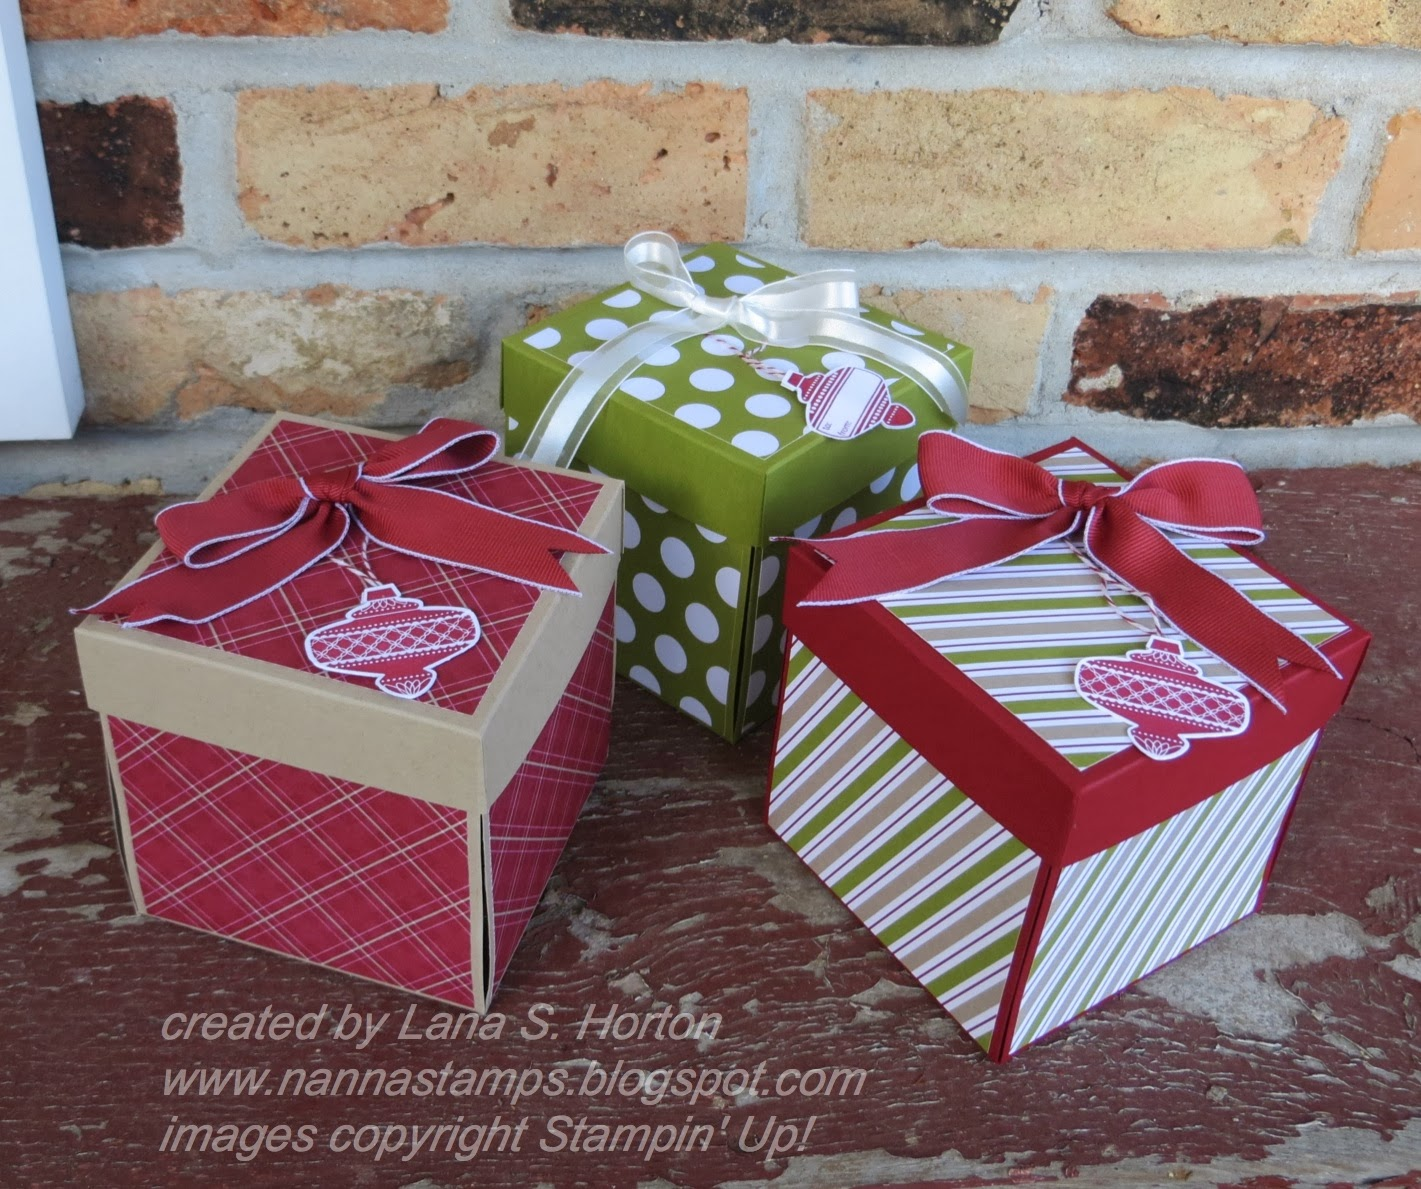 How to make scrapbook box - And Here S 1 Box Opened The Nice Thing About Using This Larger Size Box Is That There Is Room To Add A Fun Little Gift Inside These Would Make An Awesome